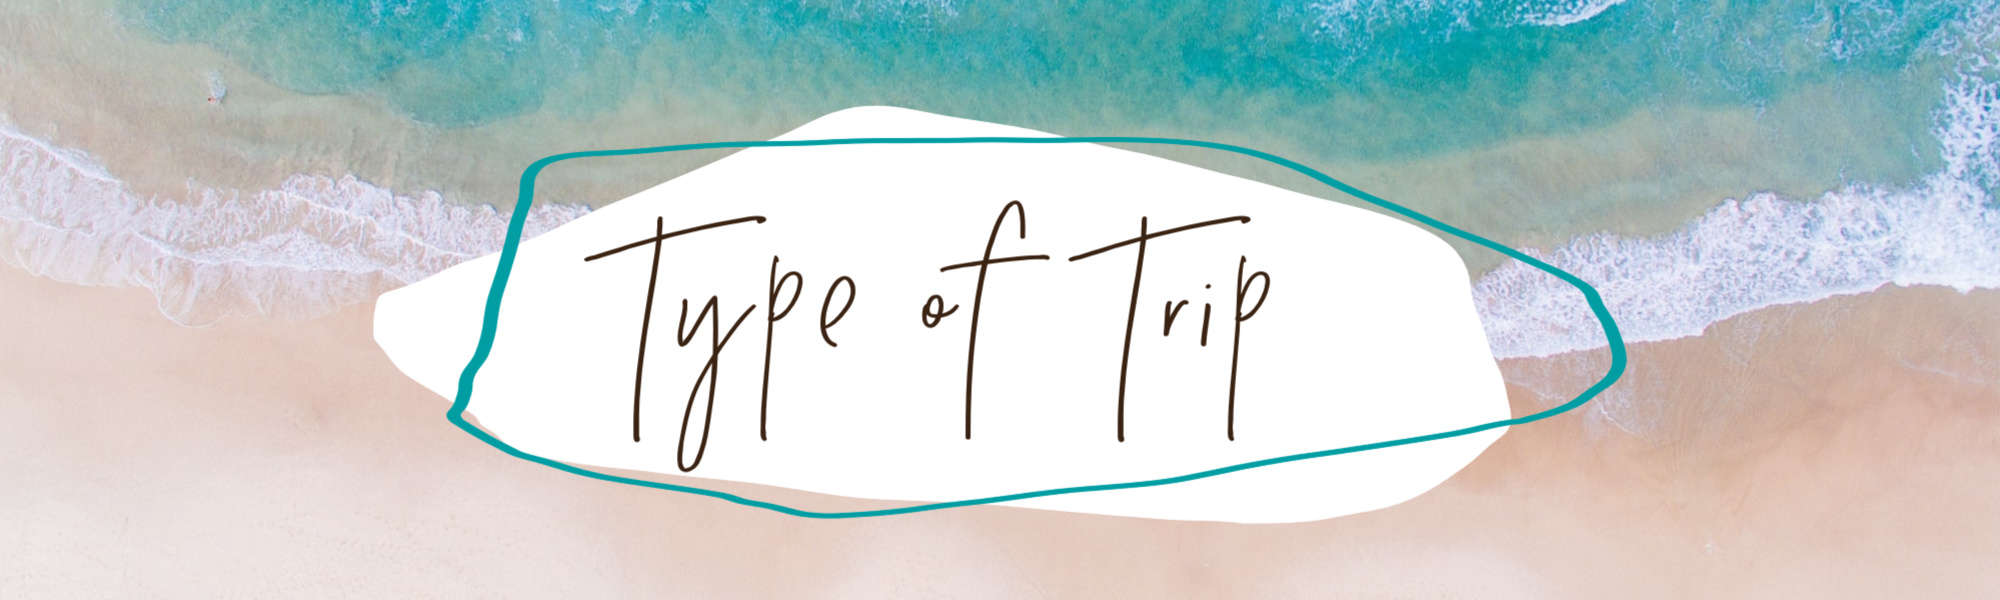 Type of trip